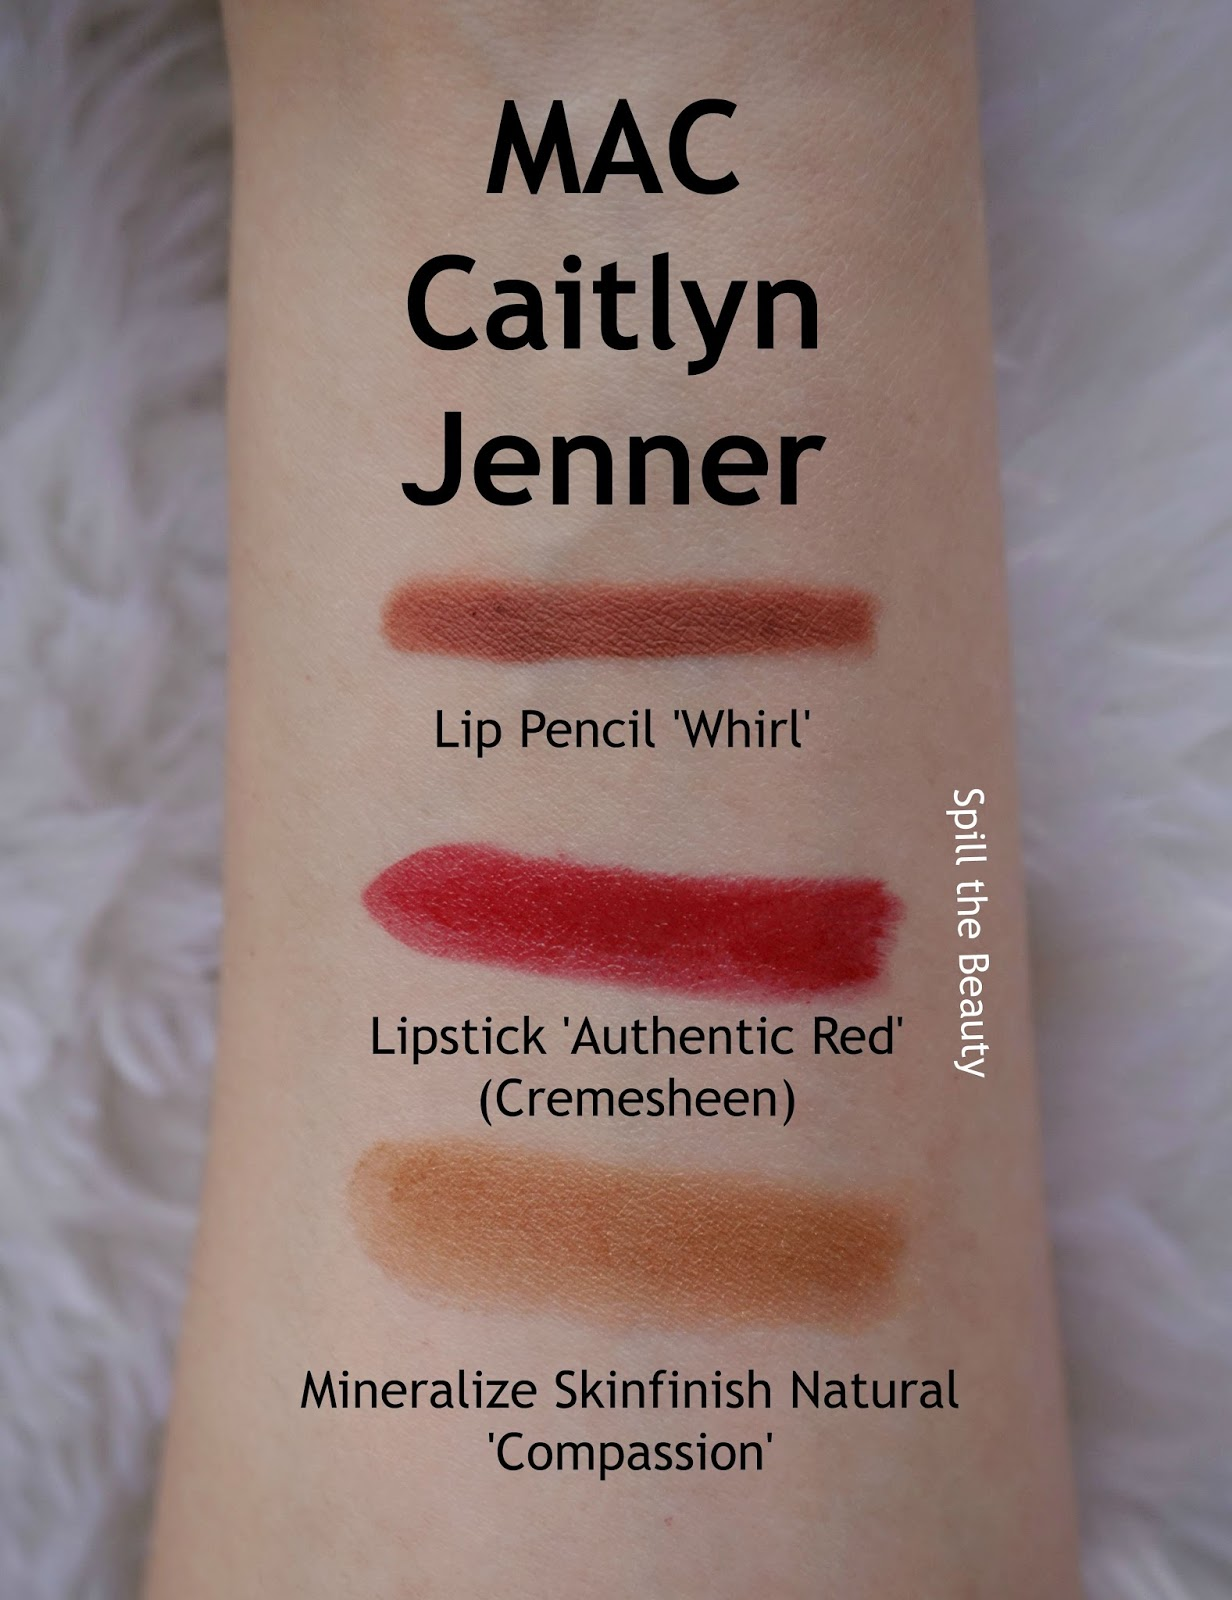 mac caitlyn jenner review swatches authentic red whirl compassion 10 arm swatches